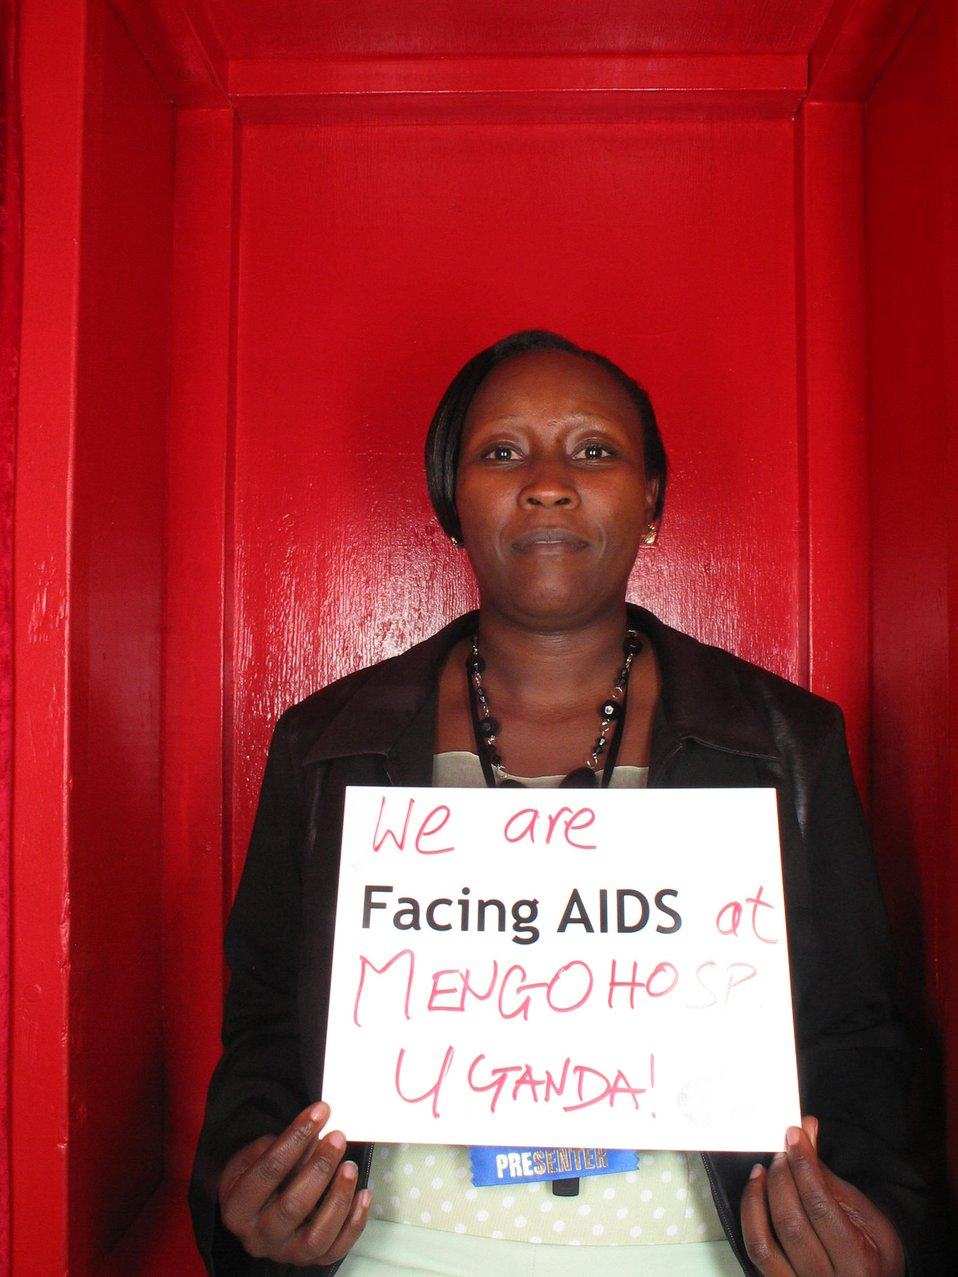 We are Facing AIDS at Mengohosp Uganda.